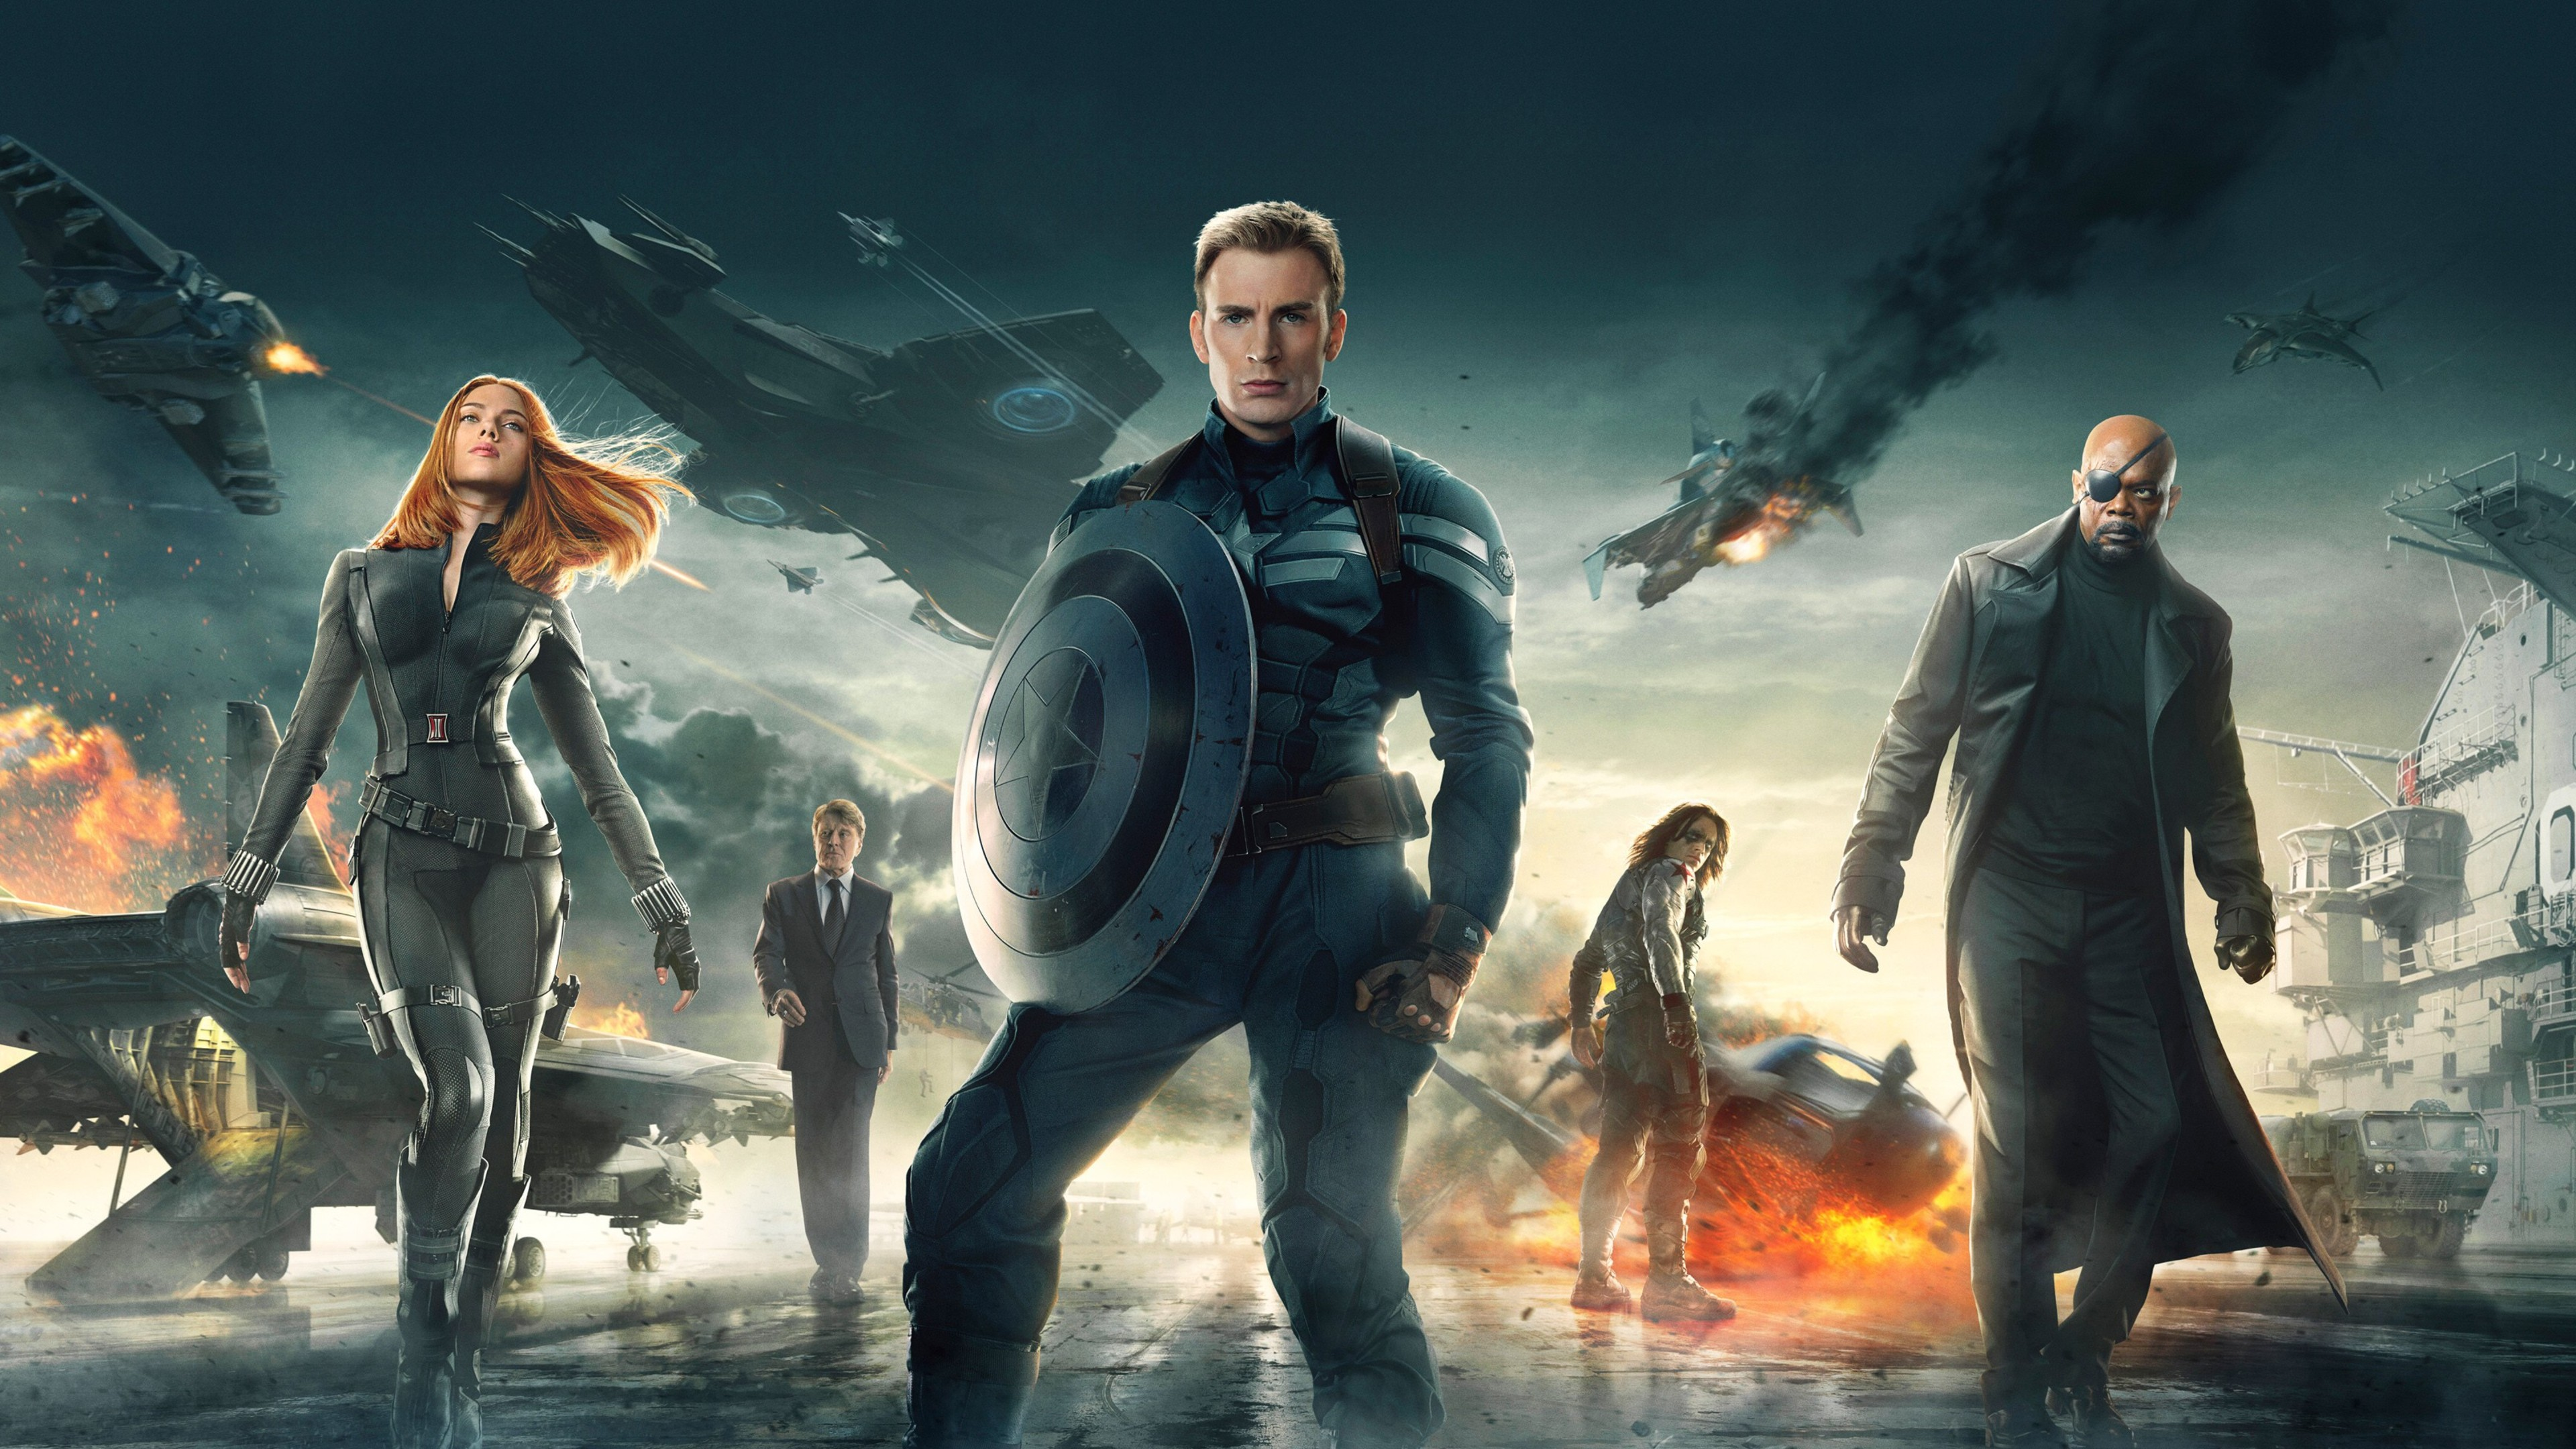 captain america the winter soldier, hd movies, 4k wallpapers, images